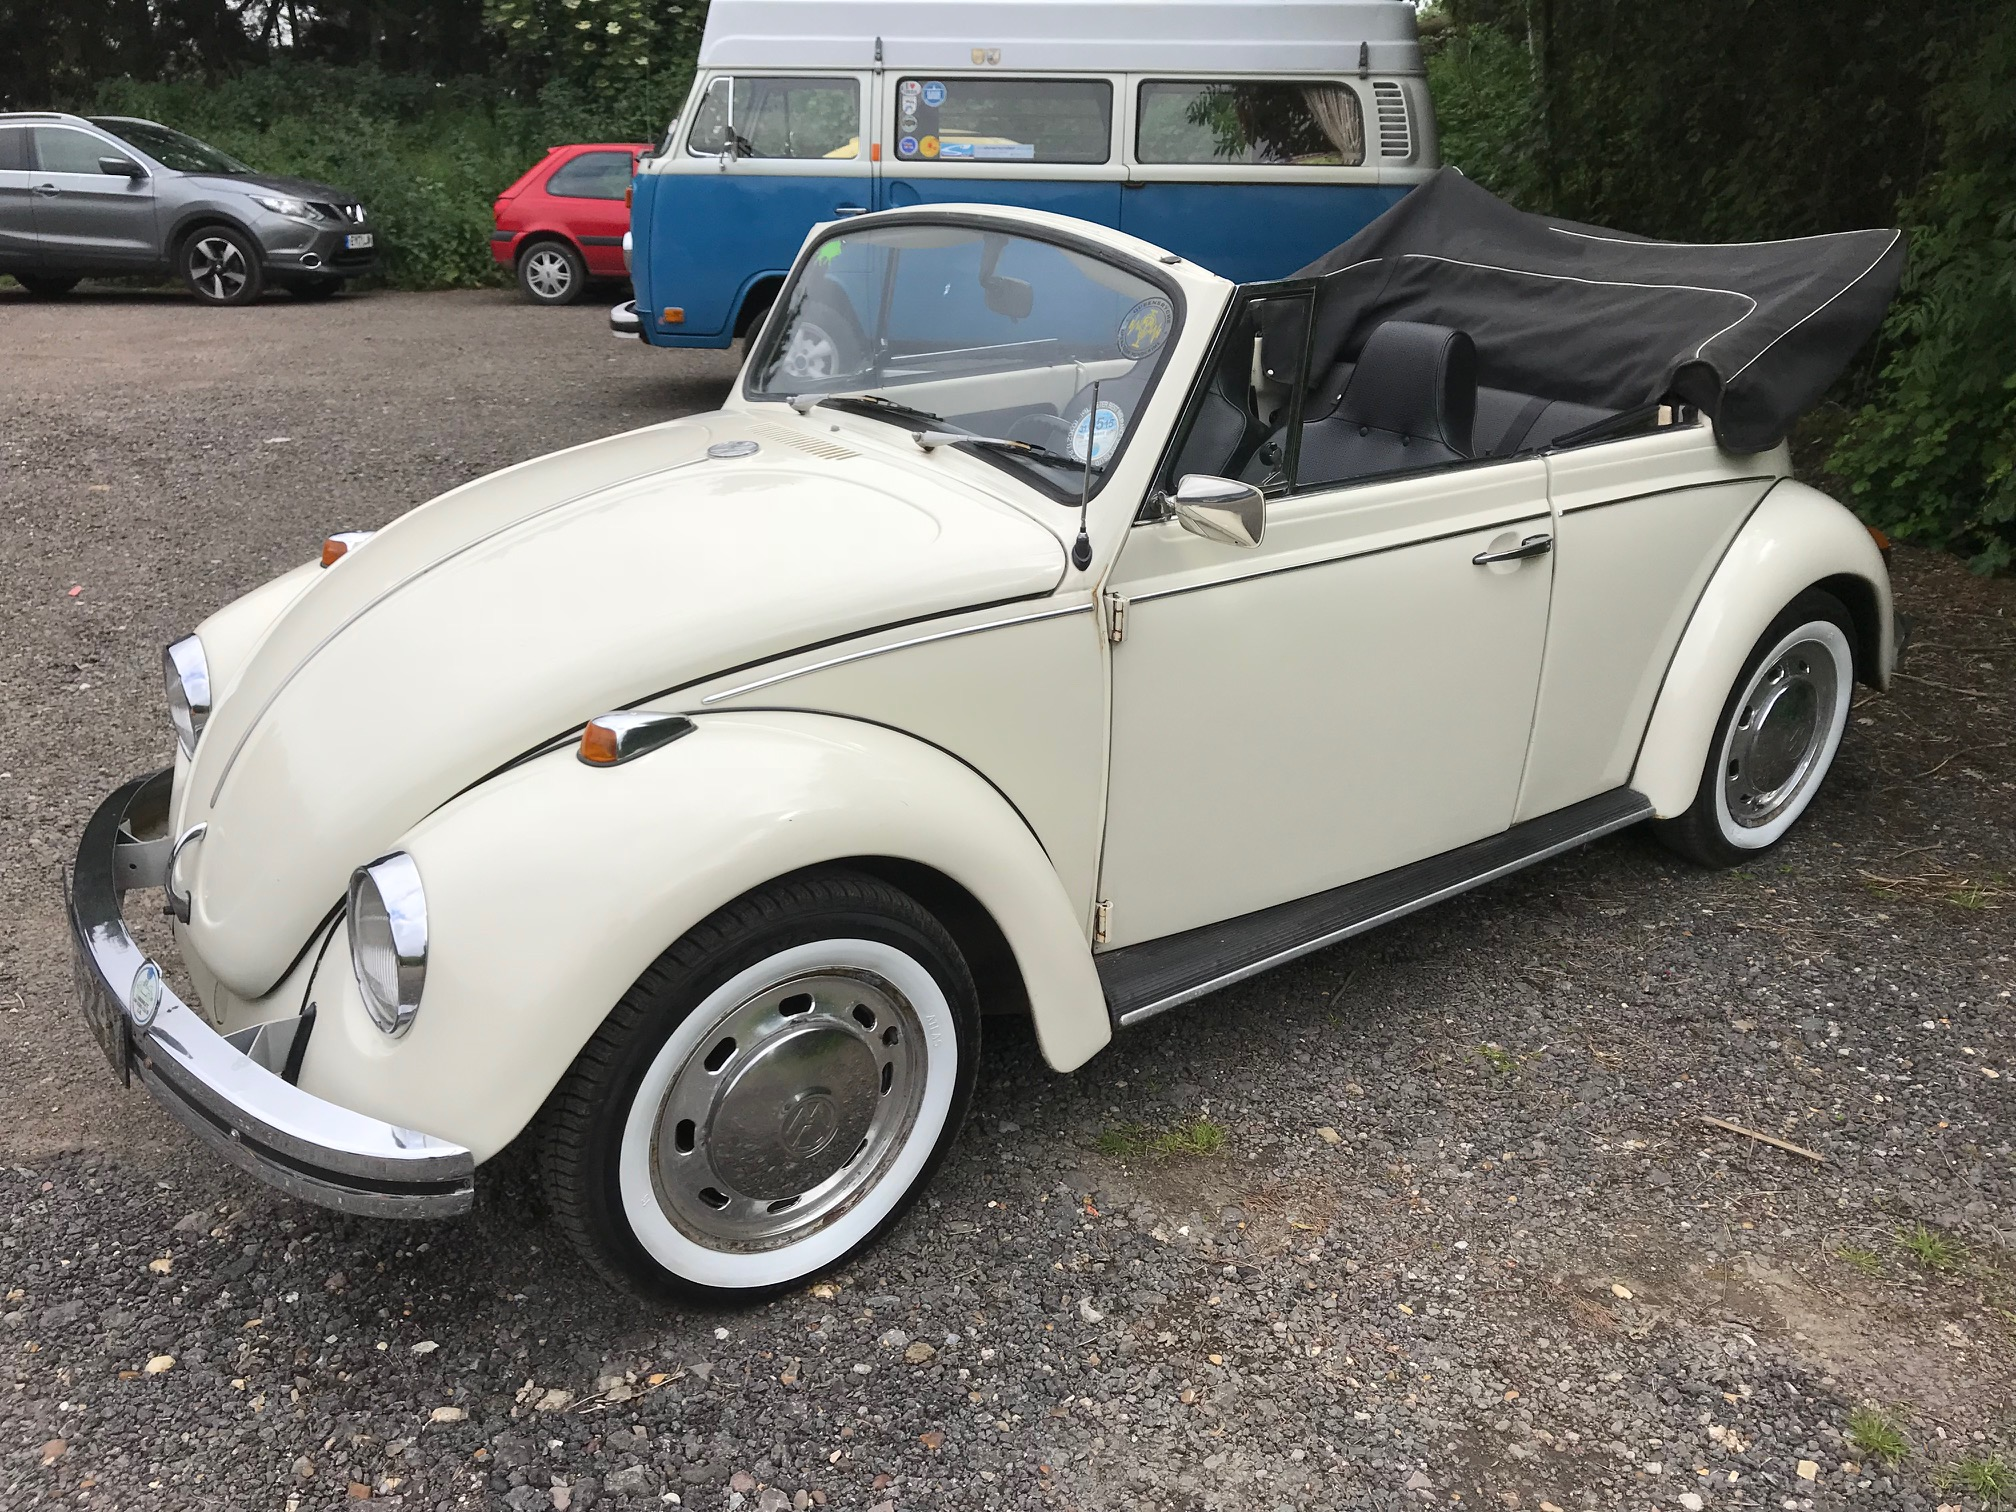 vw-karmann-beetle-for-sale-essex